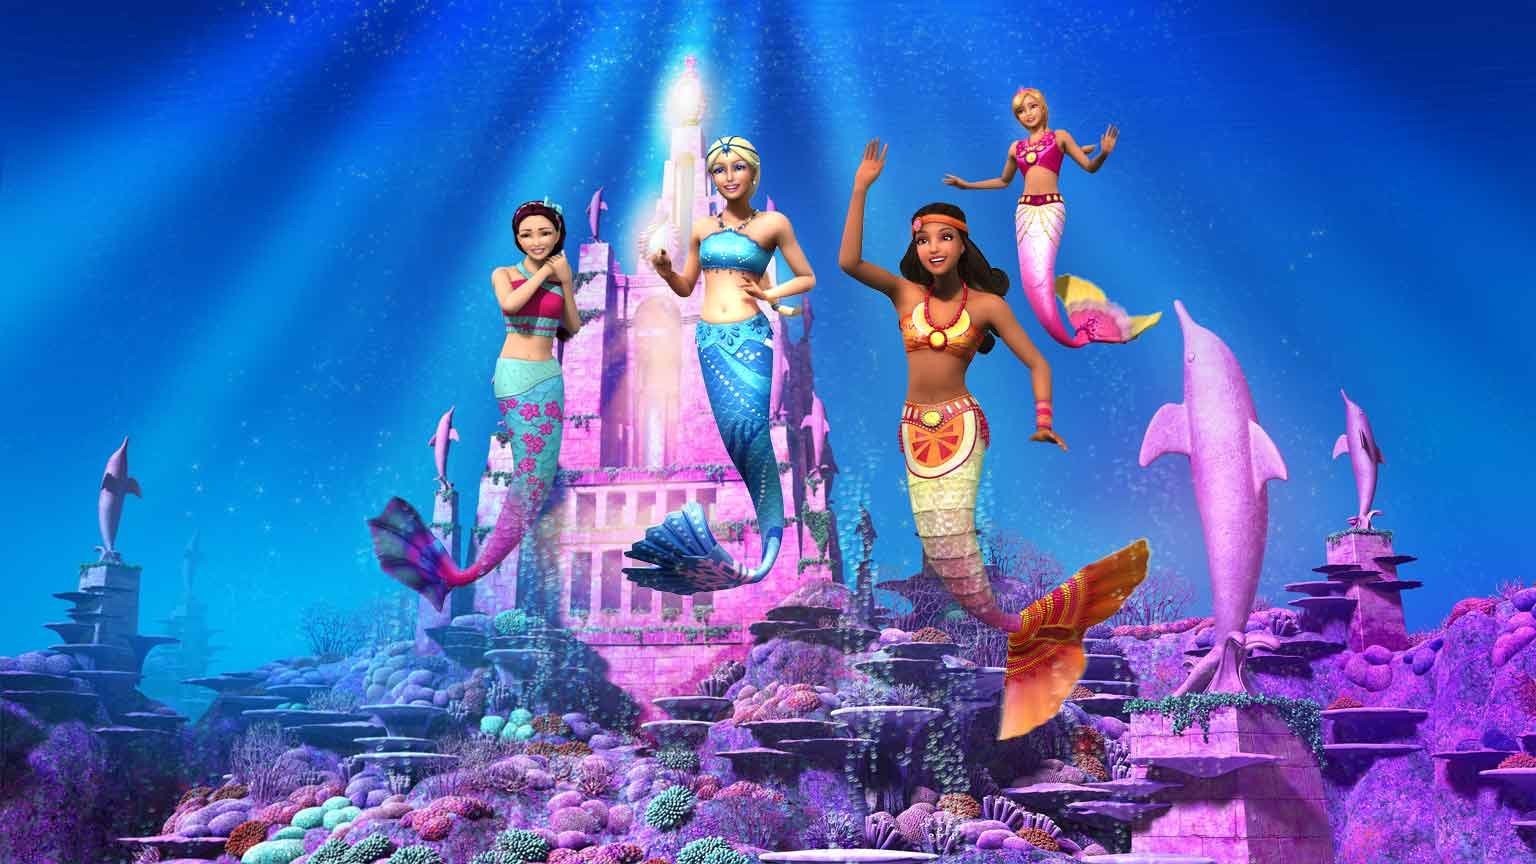 Children 39 s dvd review barbie in a mermaid 39 s tale 2 london mums magazine - Barbi sirene 2 film ...